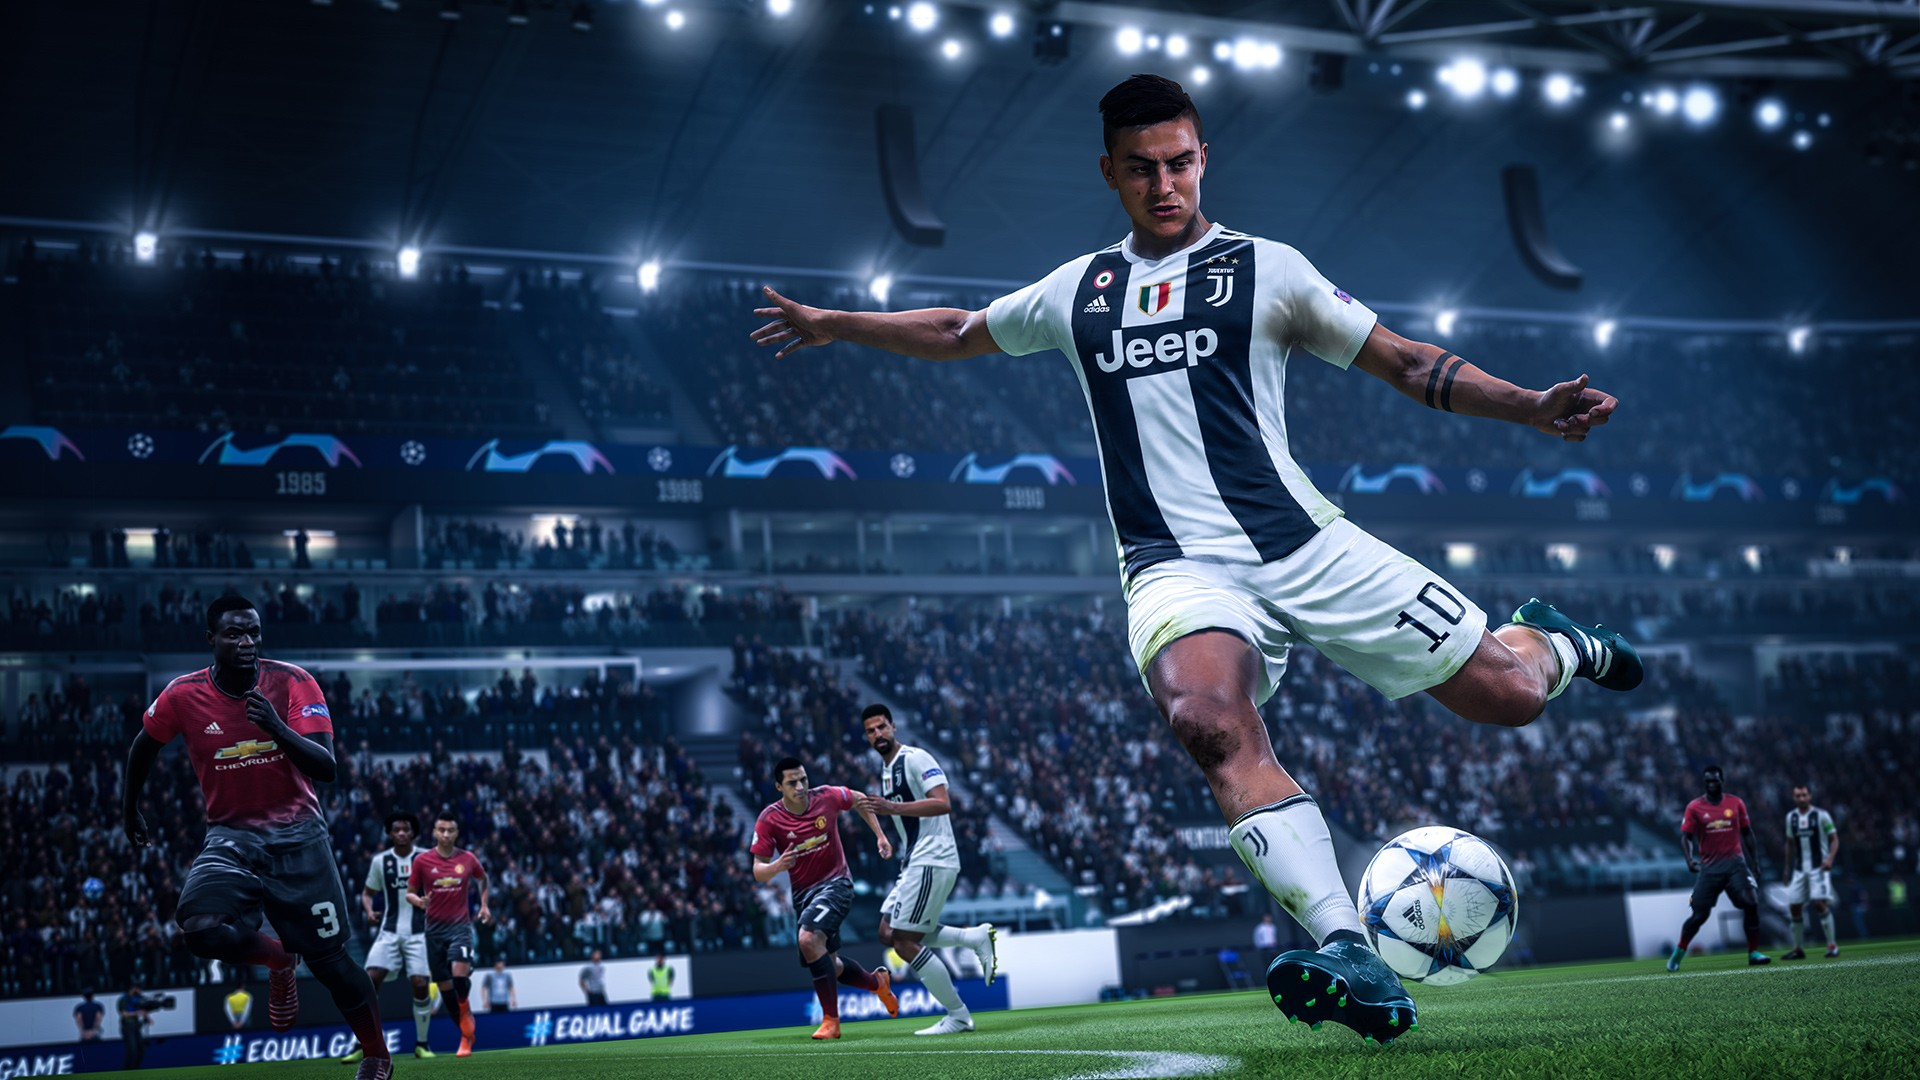 fifa 19 license key generator download